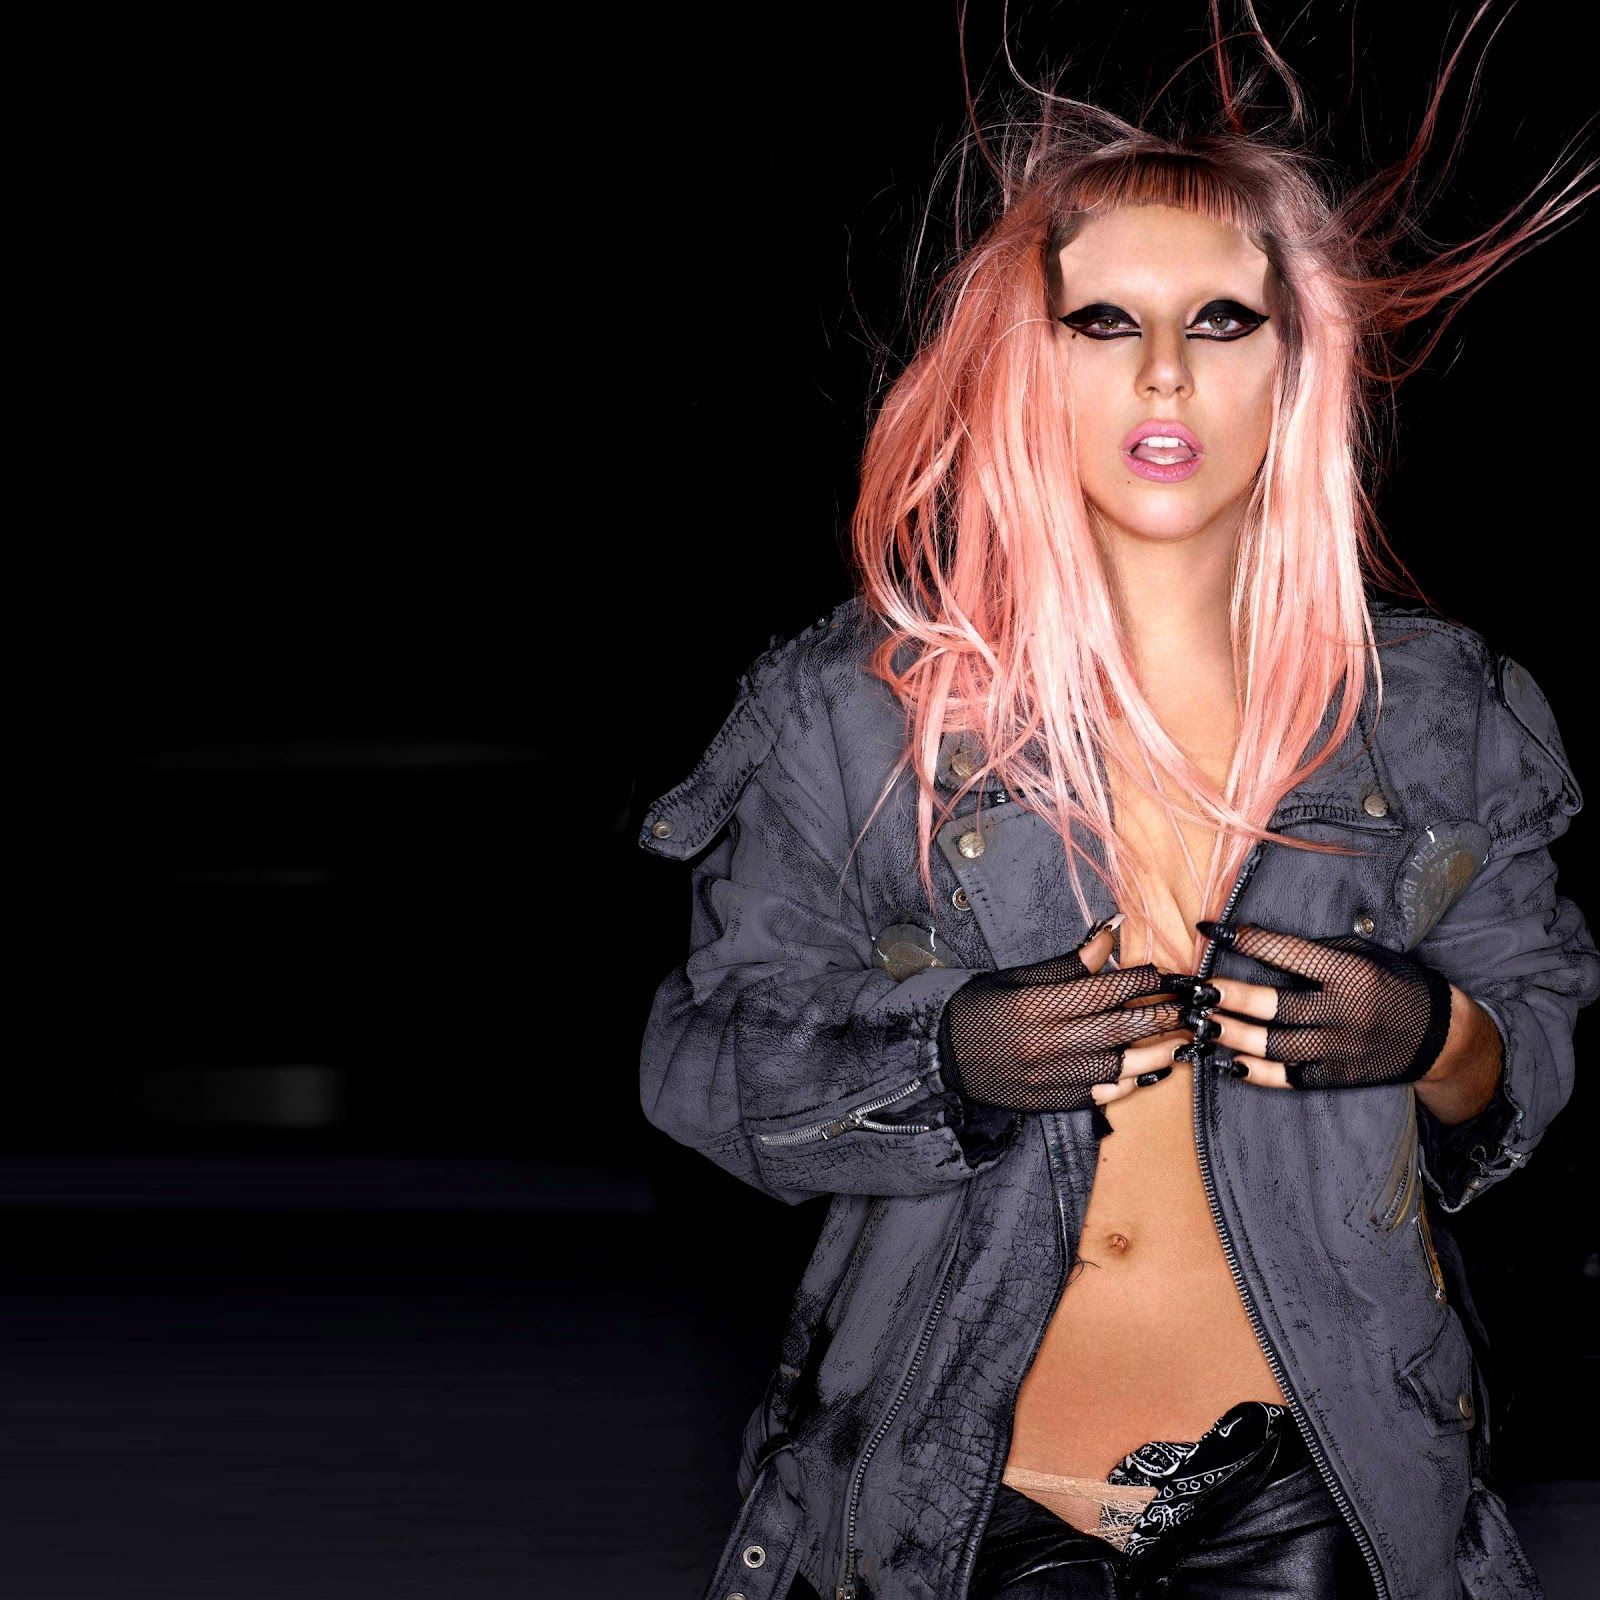 lady gaga born this way photoshoot color - Google Search   Mother